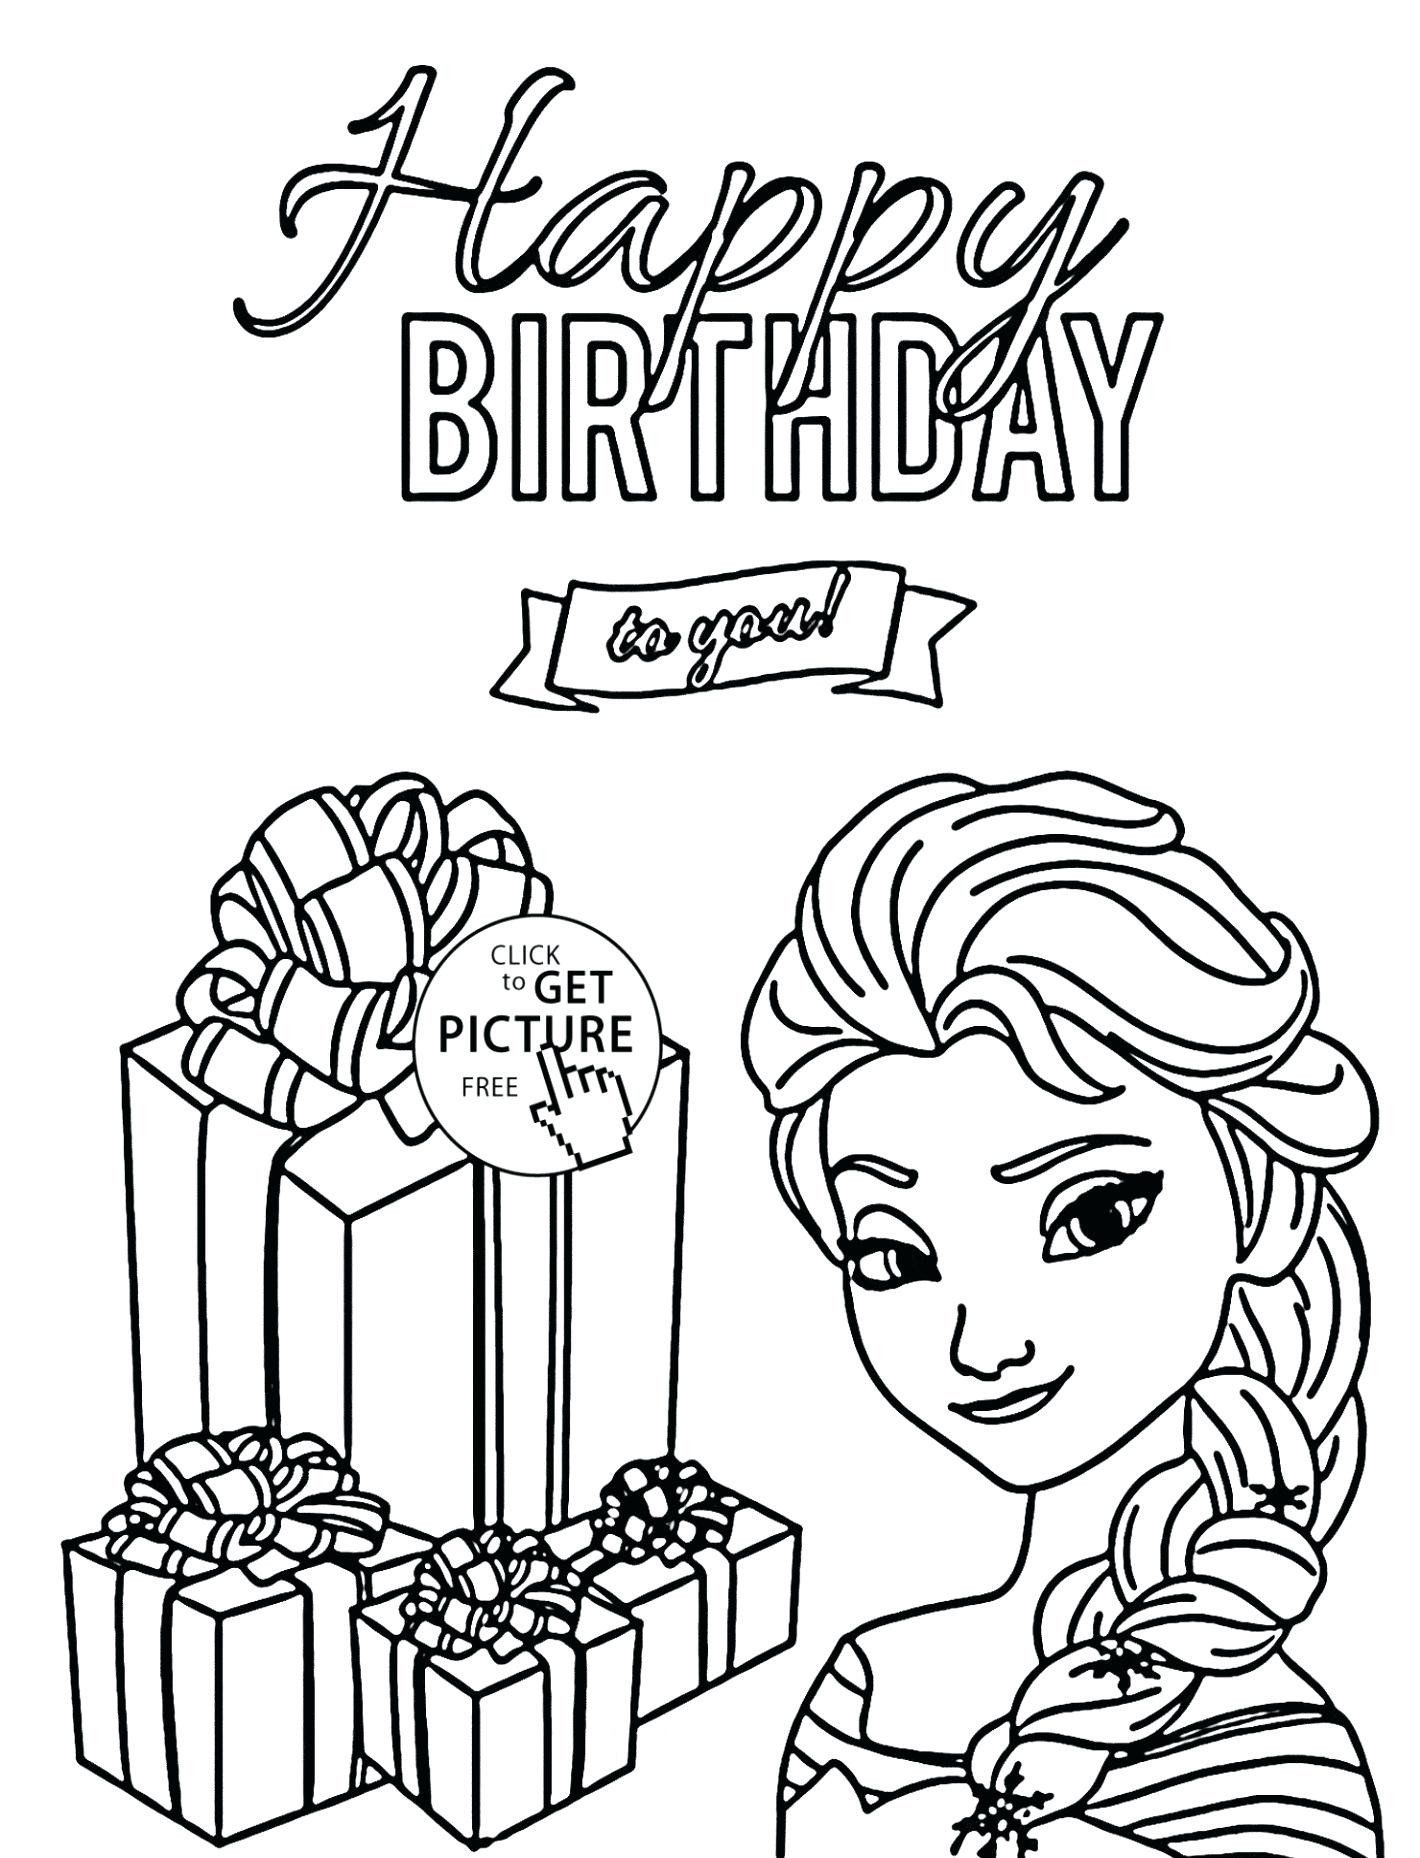 Birthday Coloring Pages For Grandma Coloring Freerthday Card For Grandma Printable Co Happy Birthday Coloring Pages Birthday Coloring Pages Elsa Coloring Pages